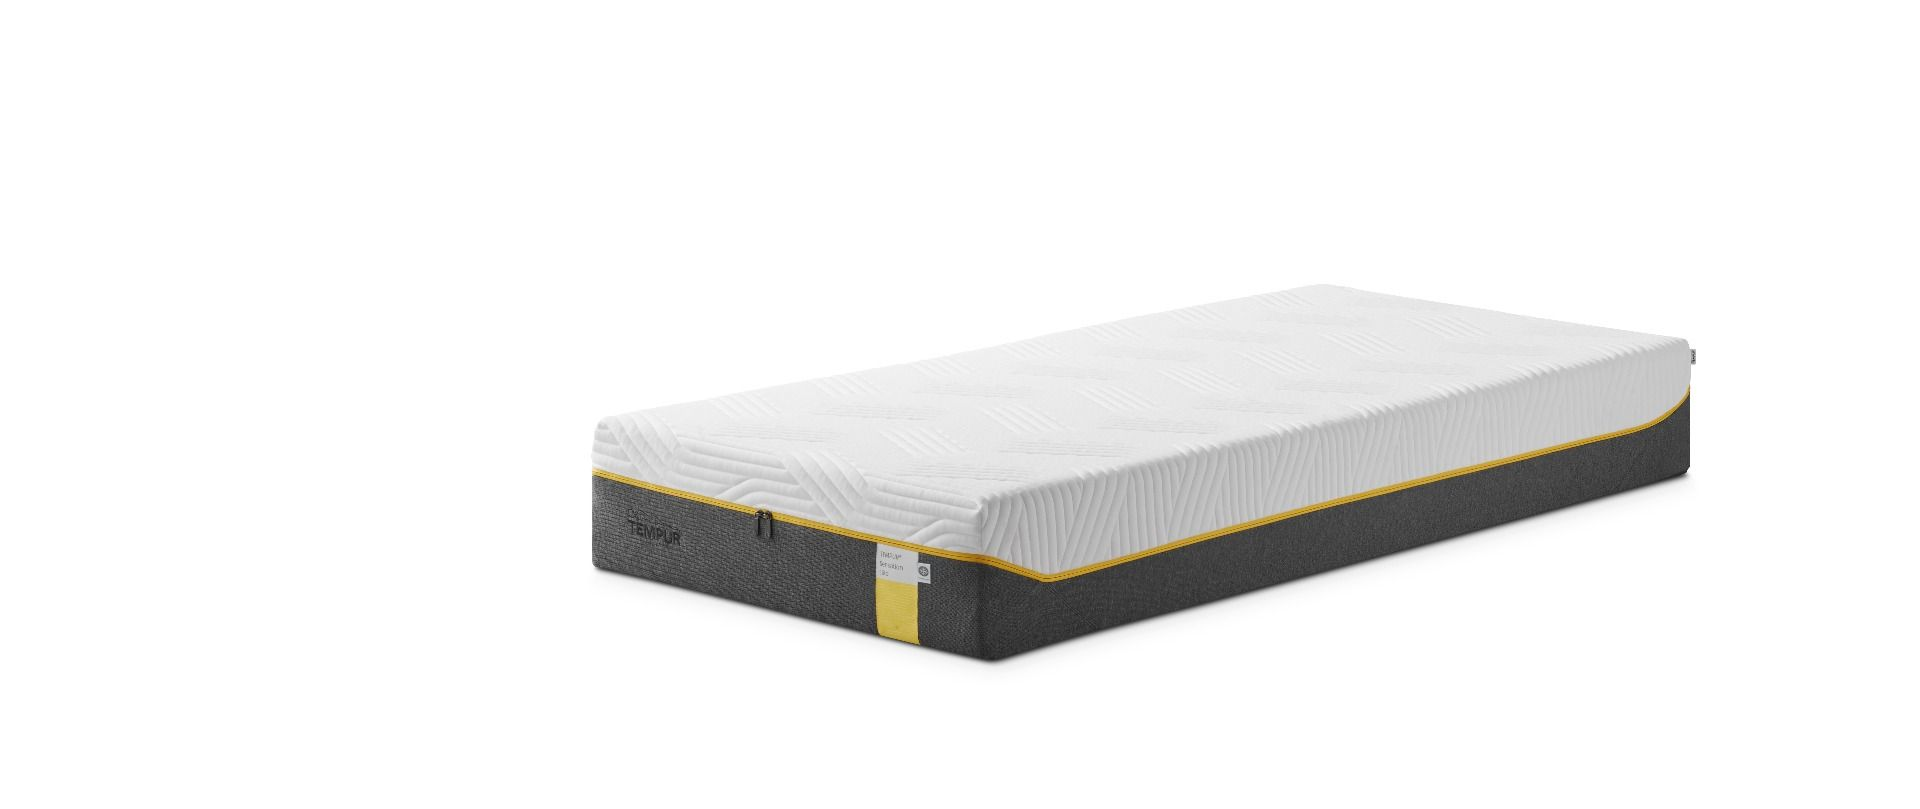 TEMPUR Sensation Elite matras met CoolTouch